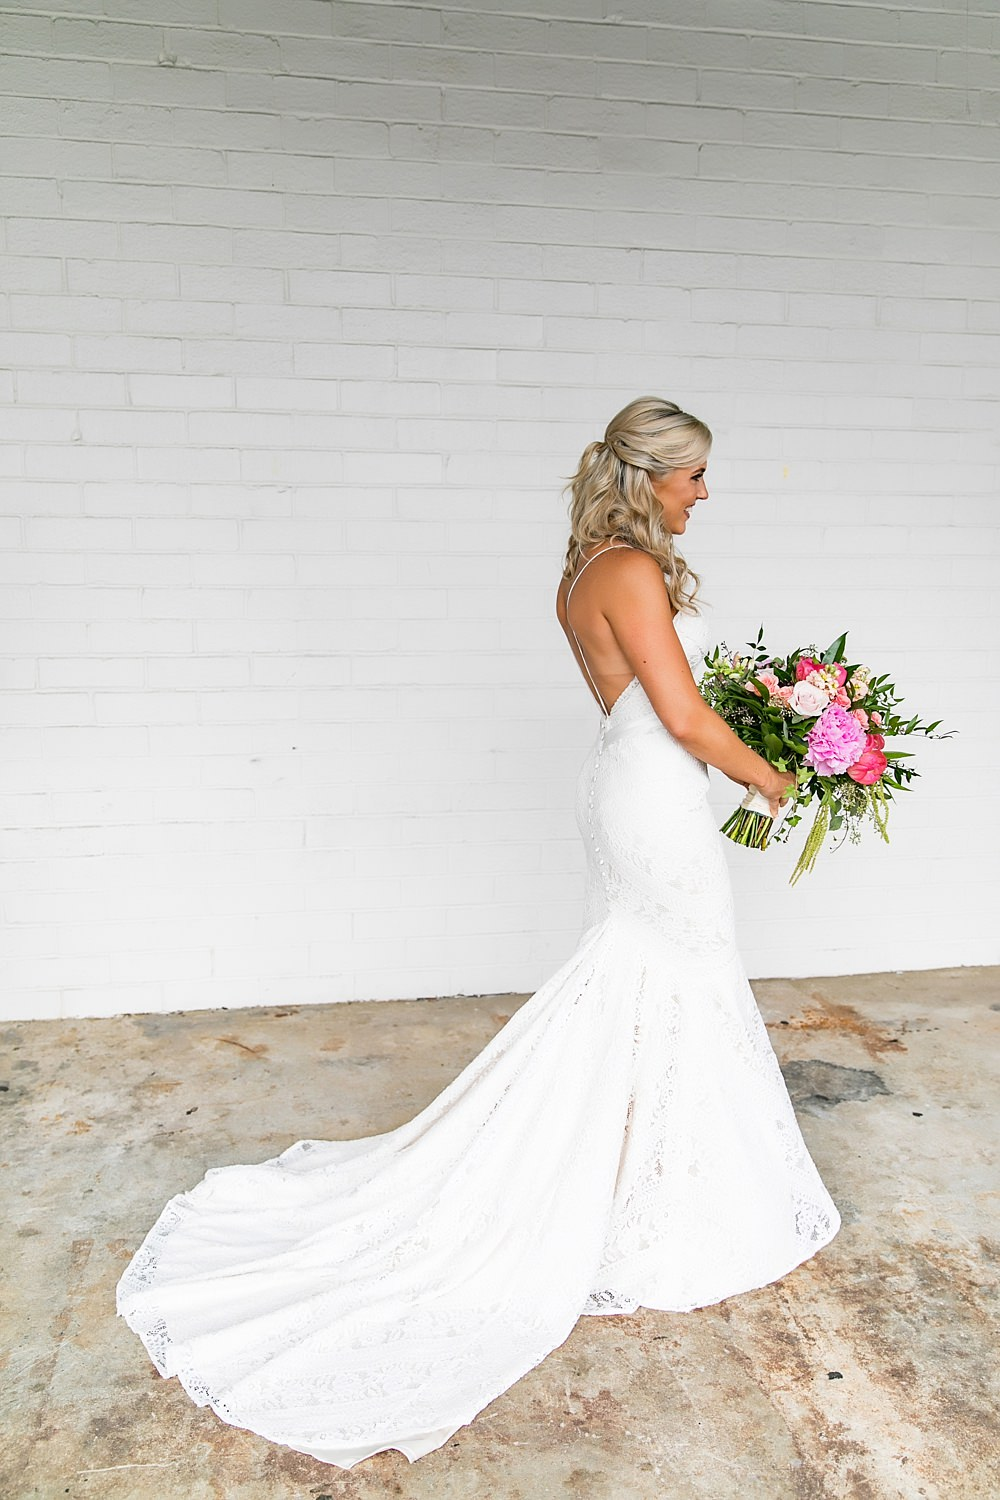 stave room wedding : l events : vue photography 0010